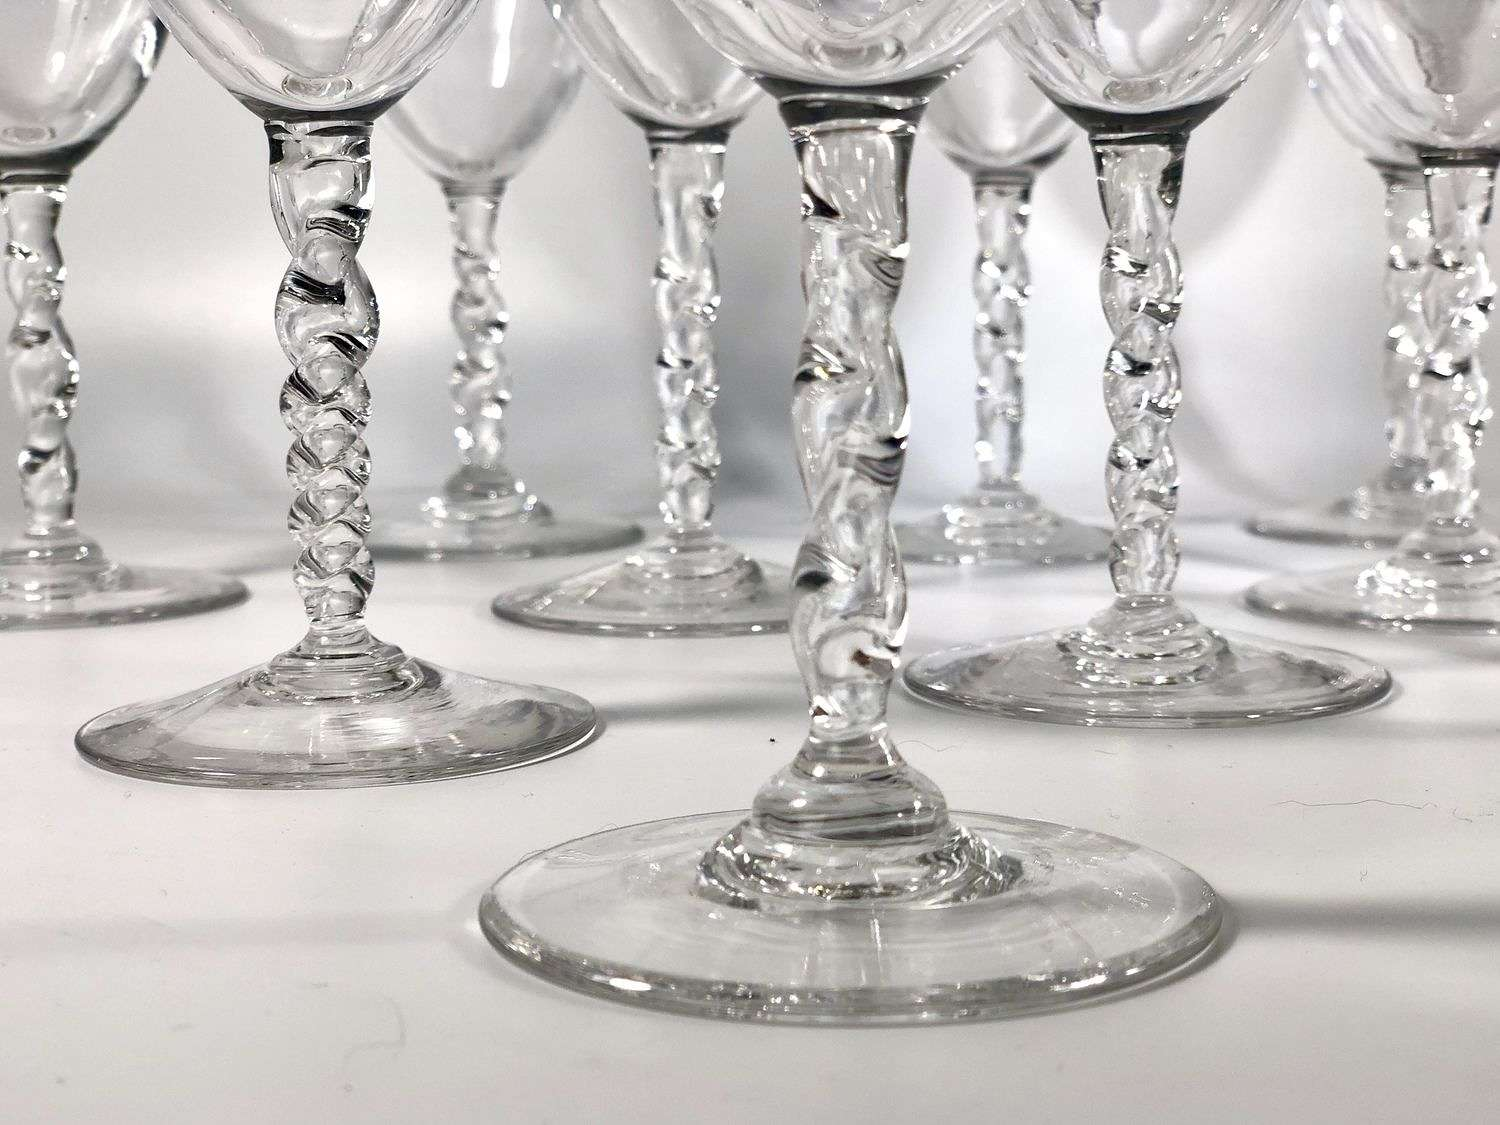 10 twisted glass tall stem wine glasses